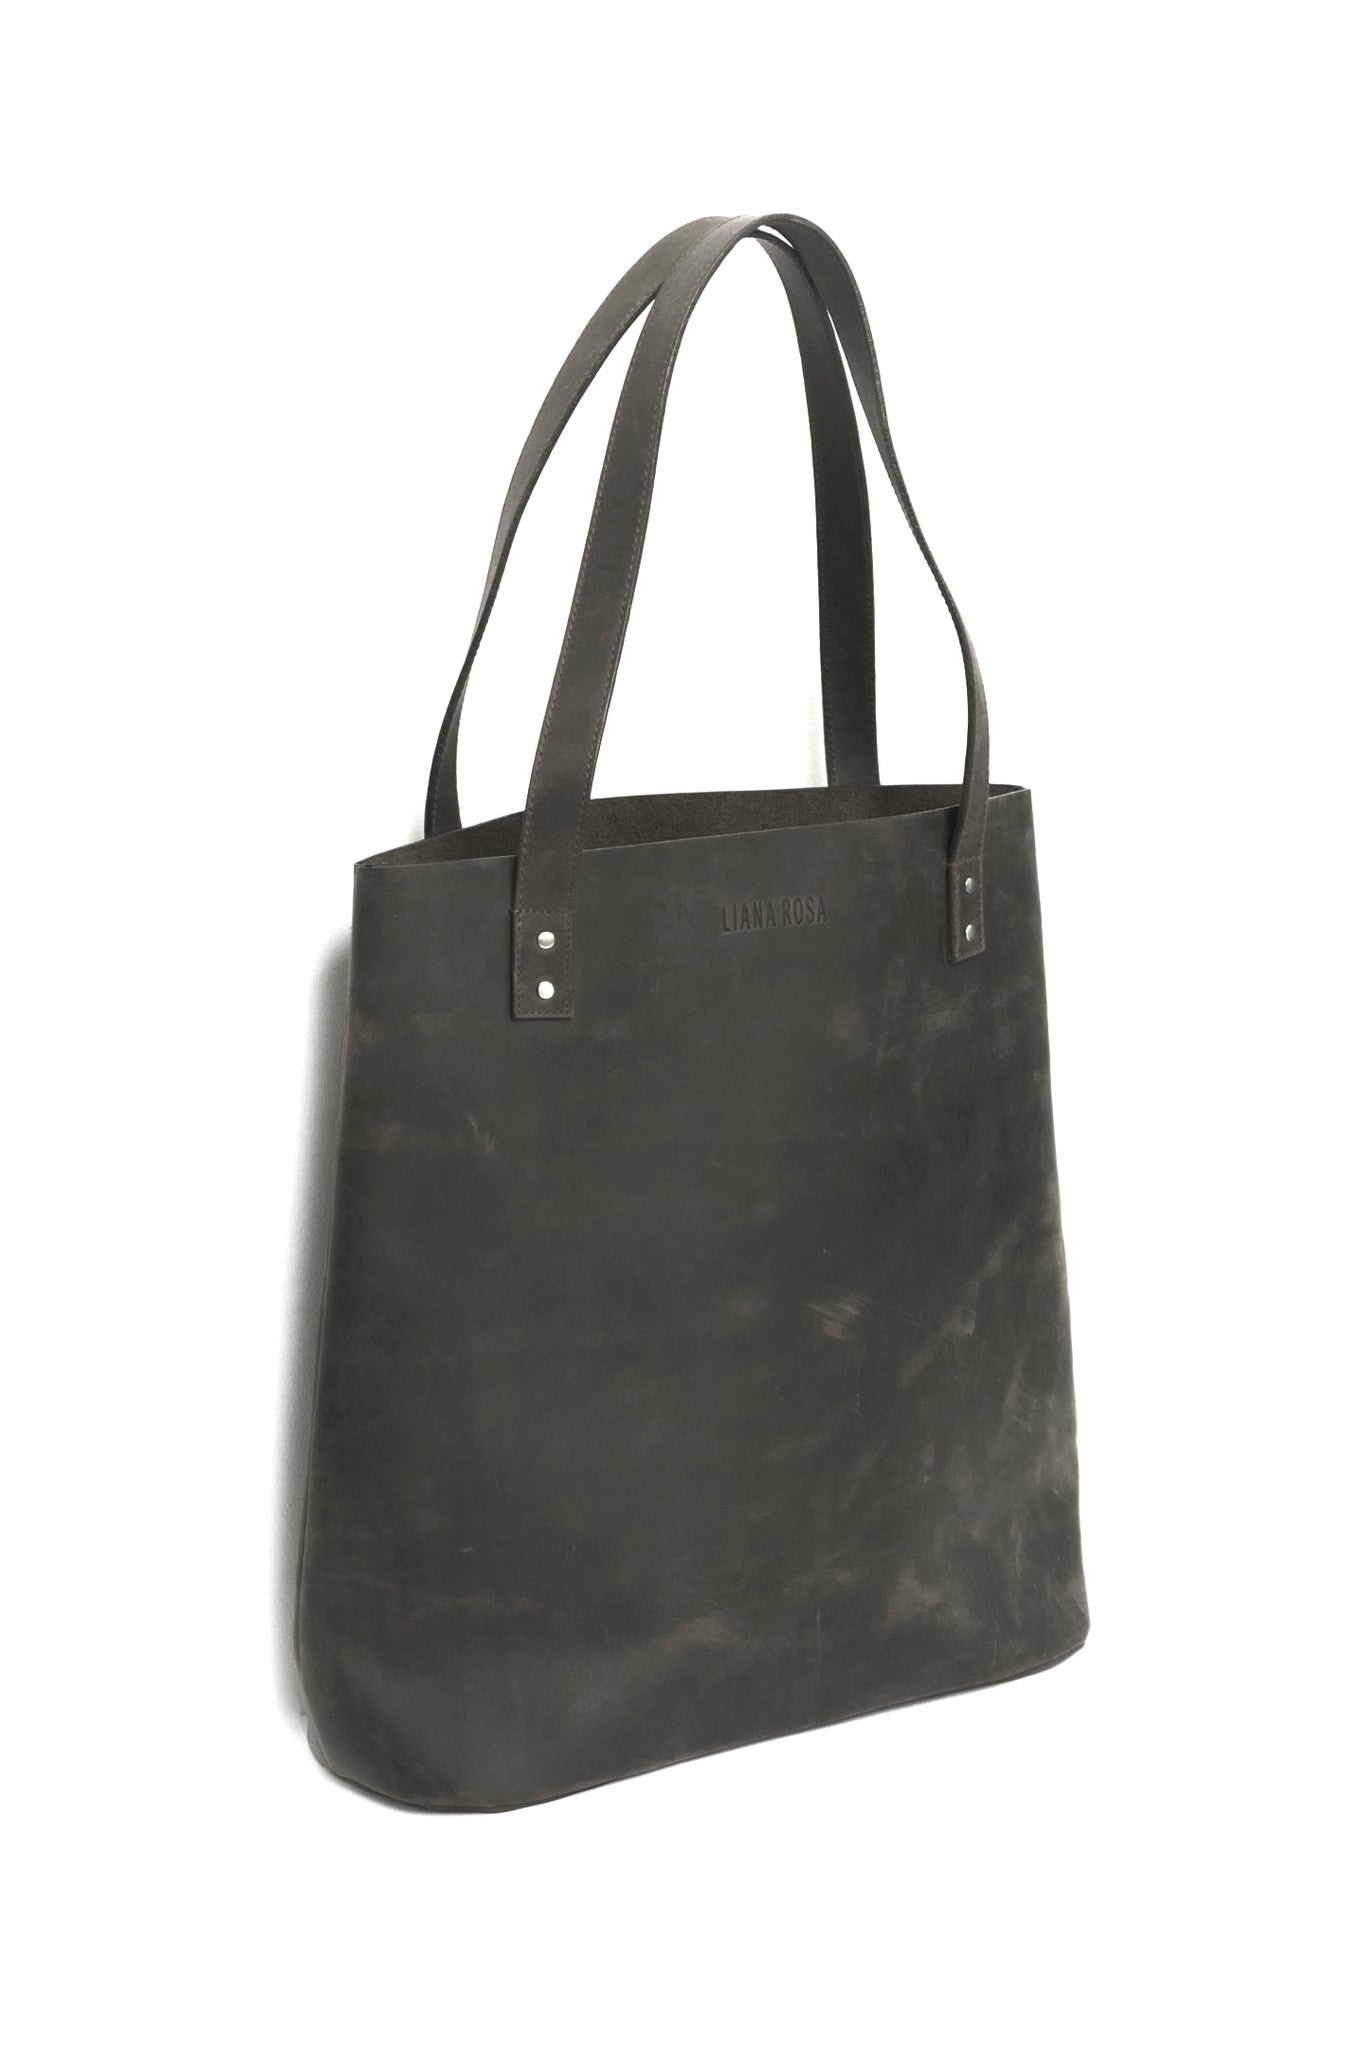 Henry Dusty Grey Leather Tote Bag Side View by Liana Rosa